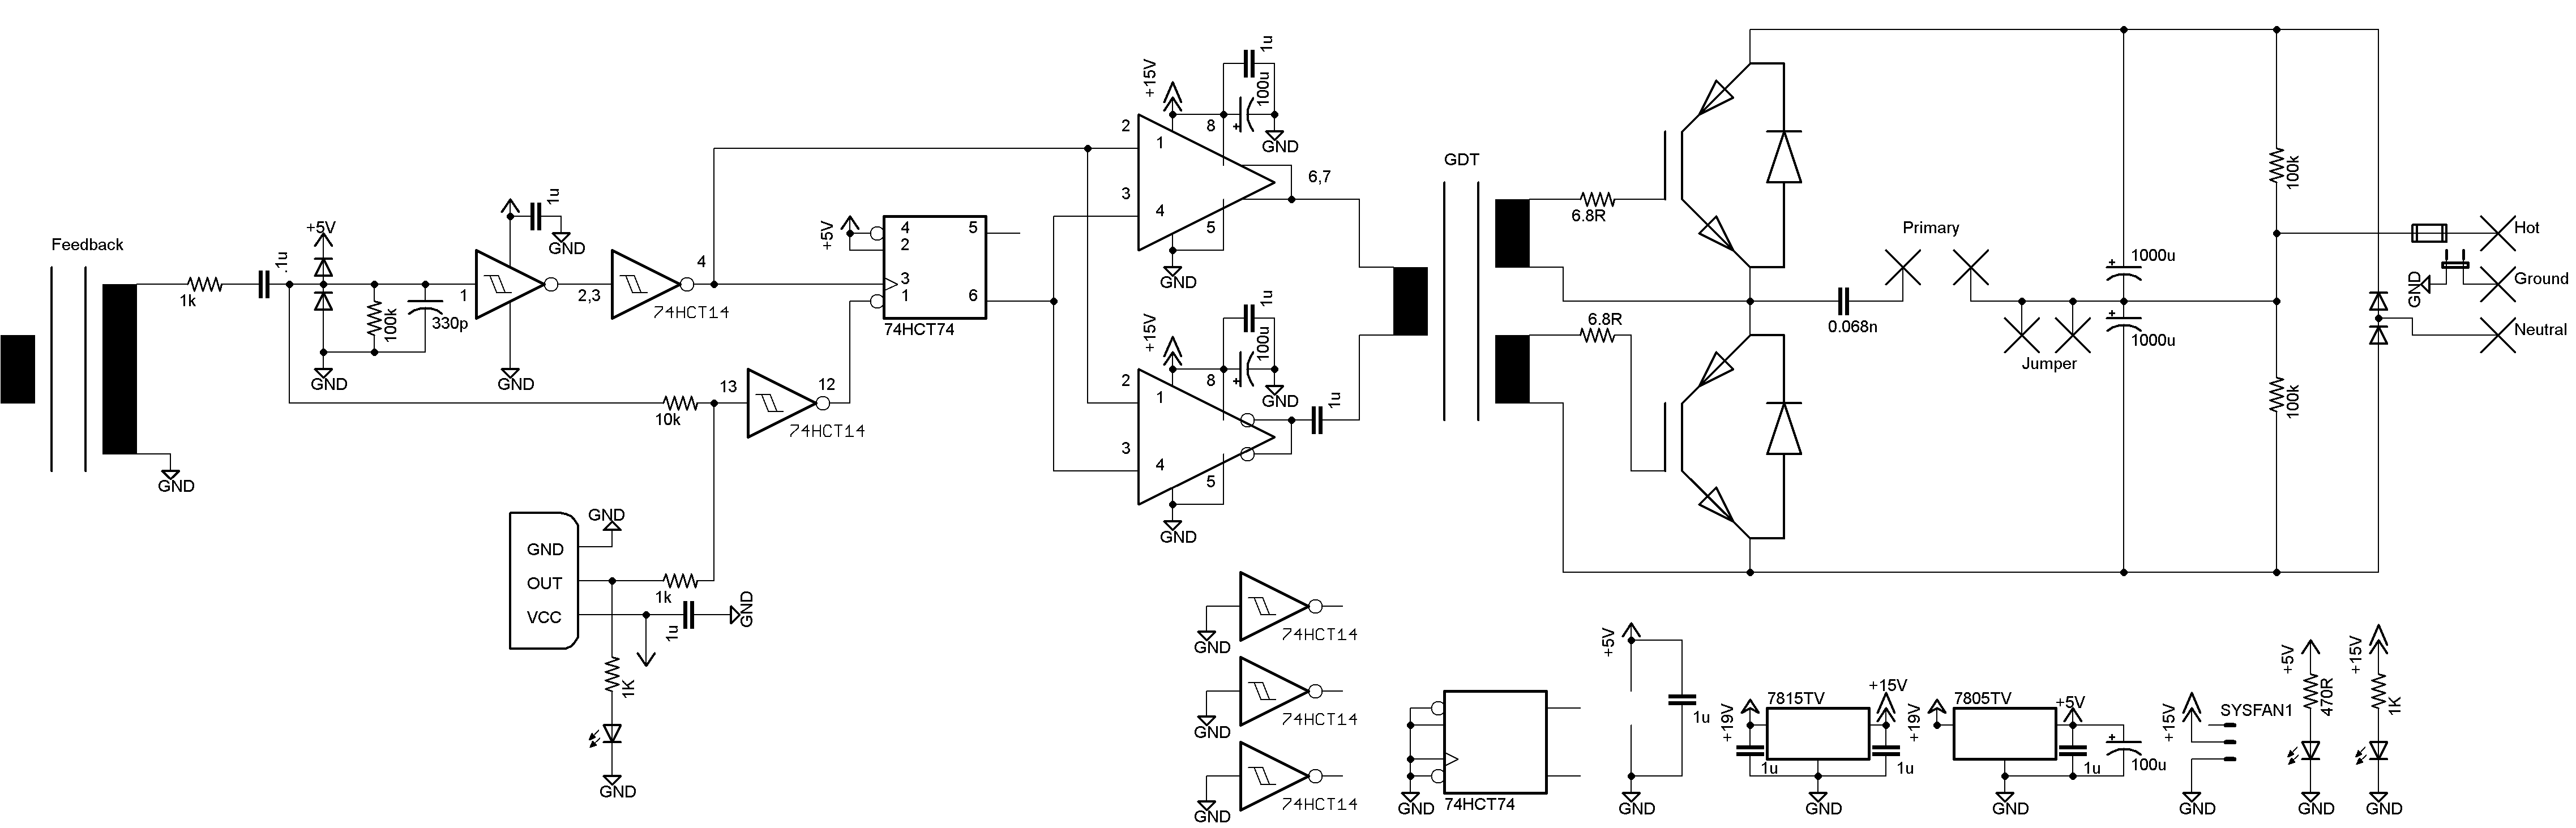 oneTesla schematic 110V version - tesla coil plans